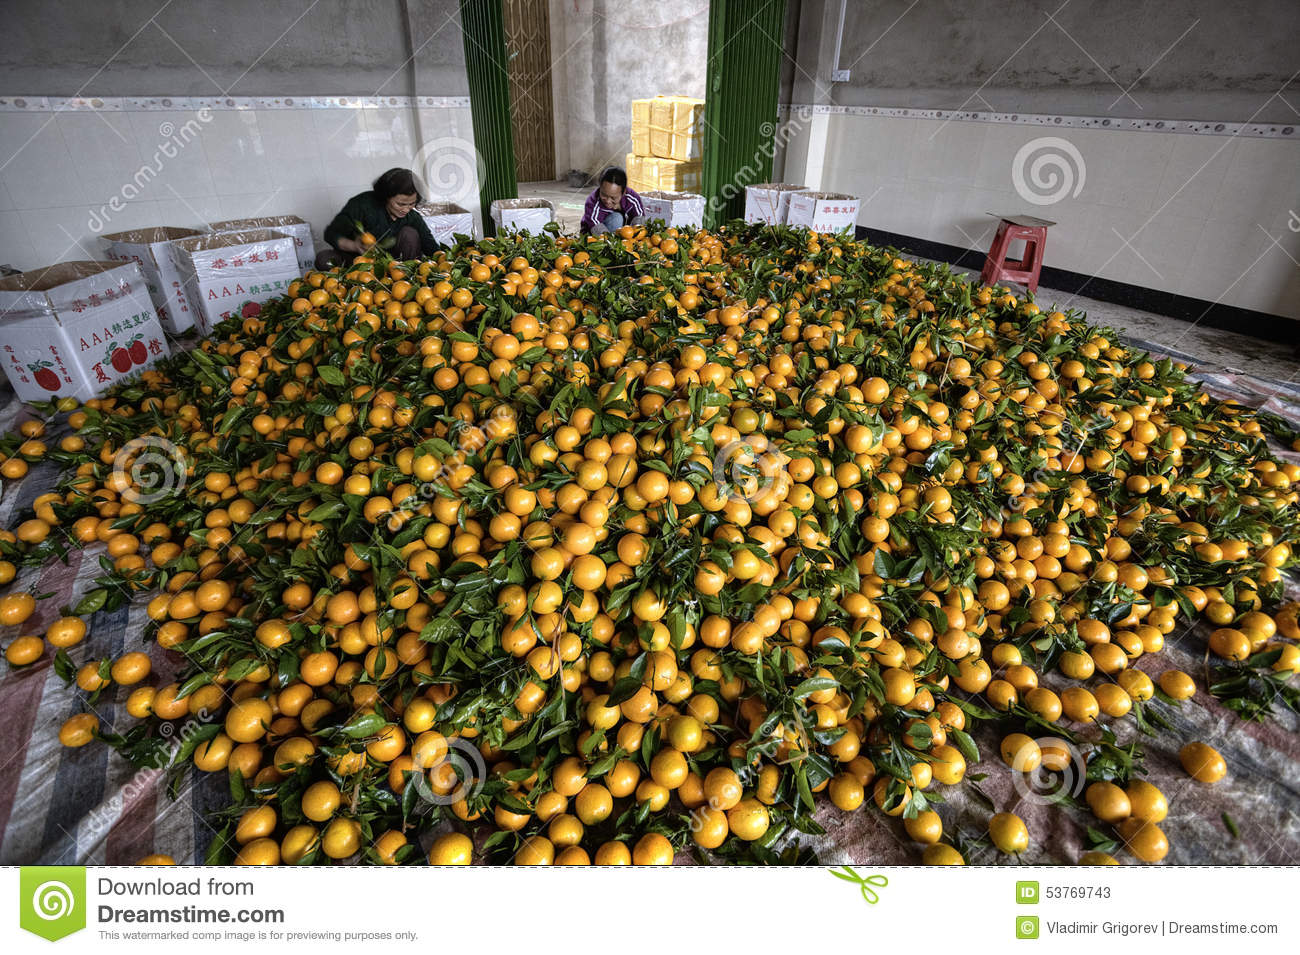 Download Pile Citrus Fruits, Many New Harvest Of Oranges, Women Packing Editorial Stock Photo - Image of agriculture, harvesting: 53769743